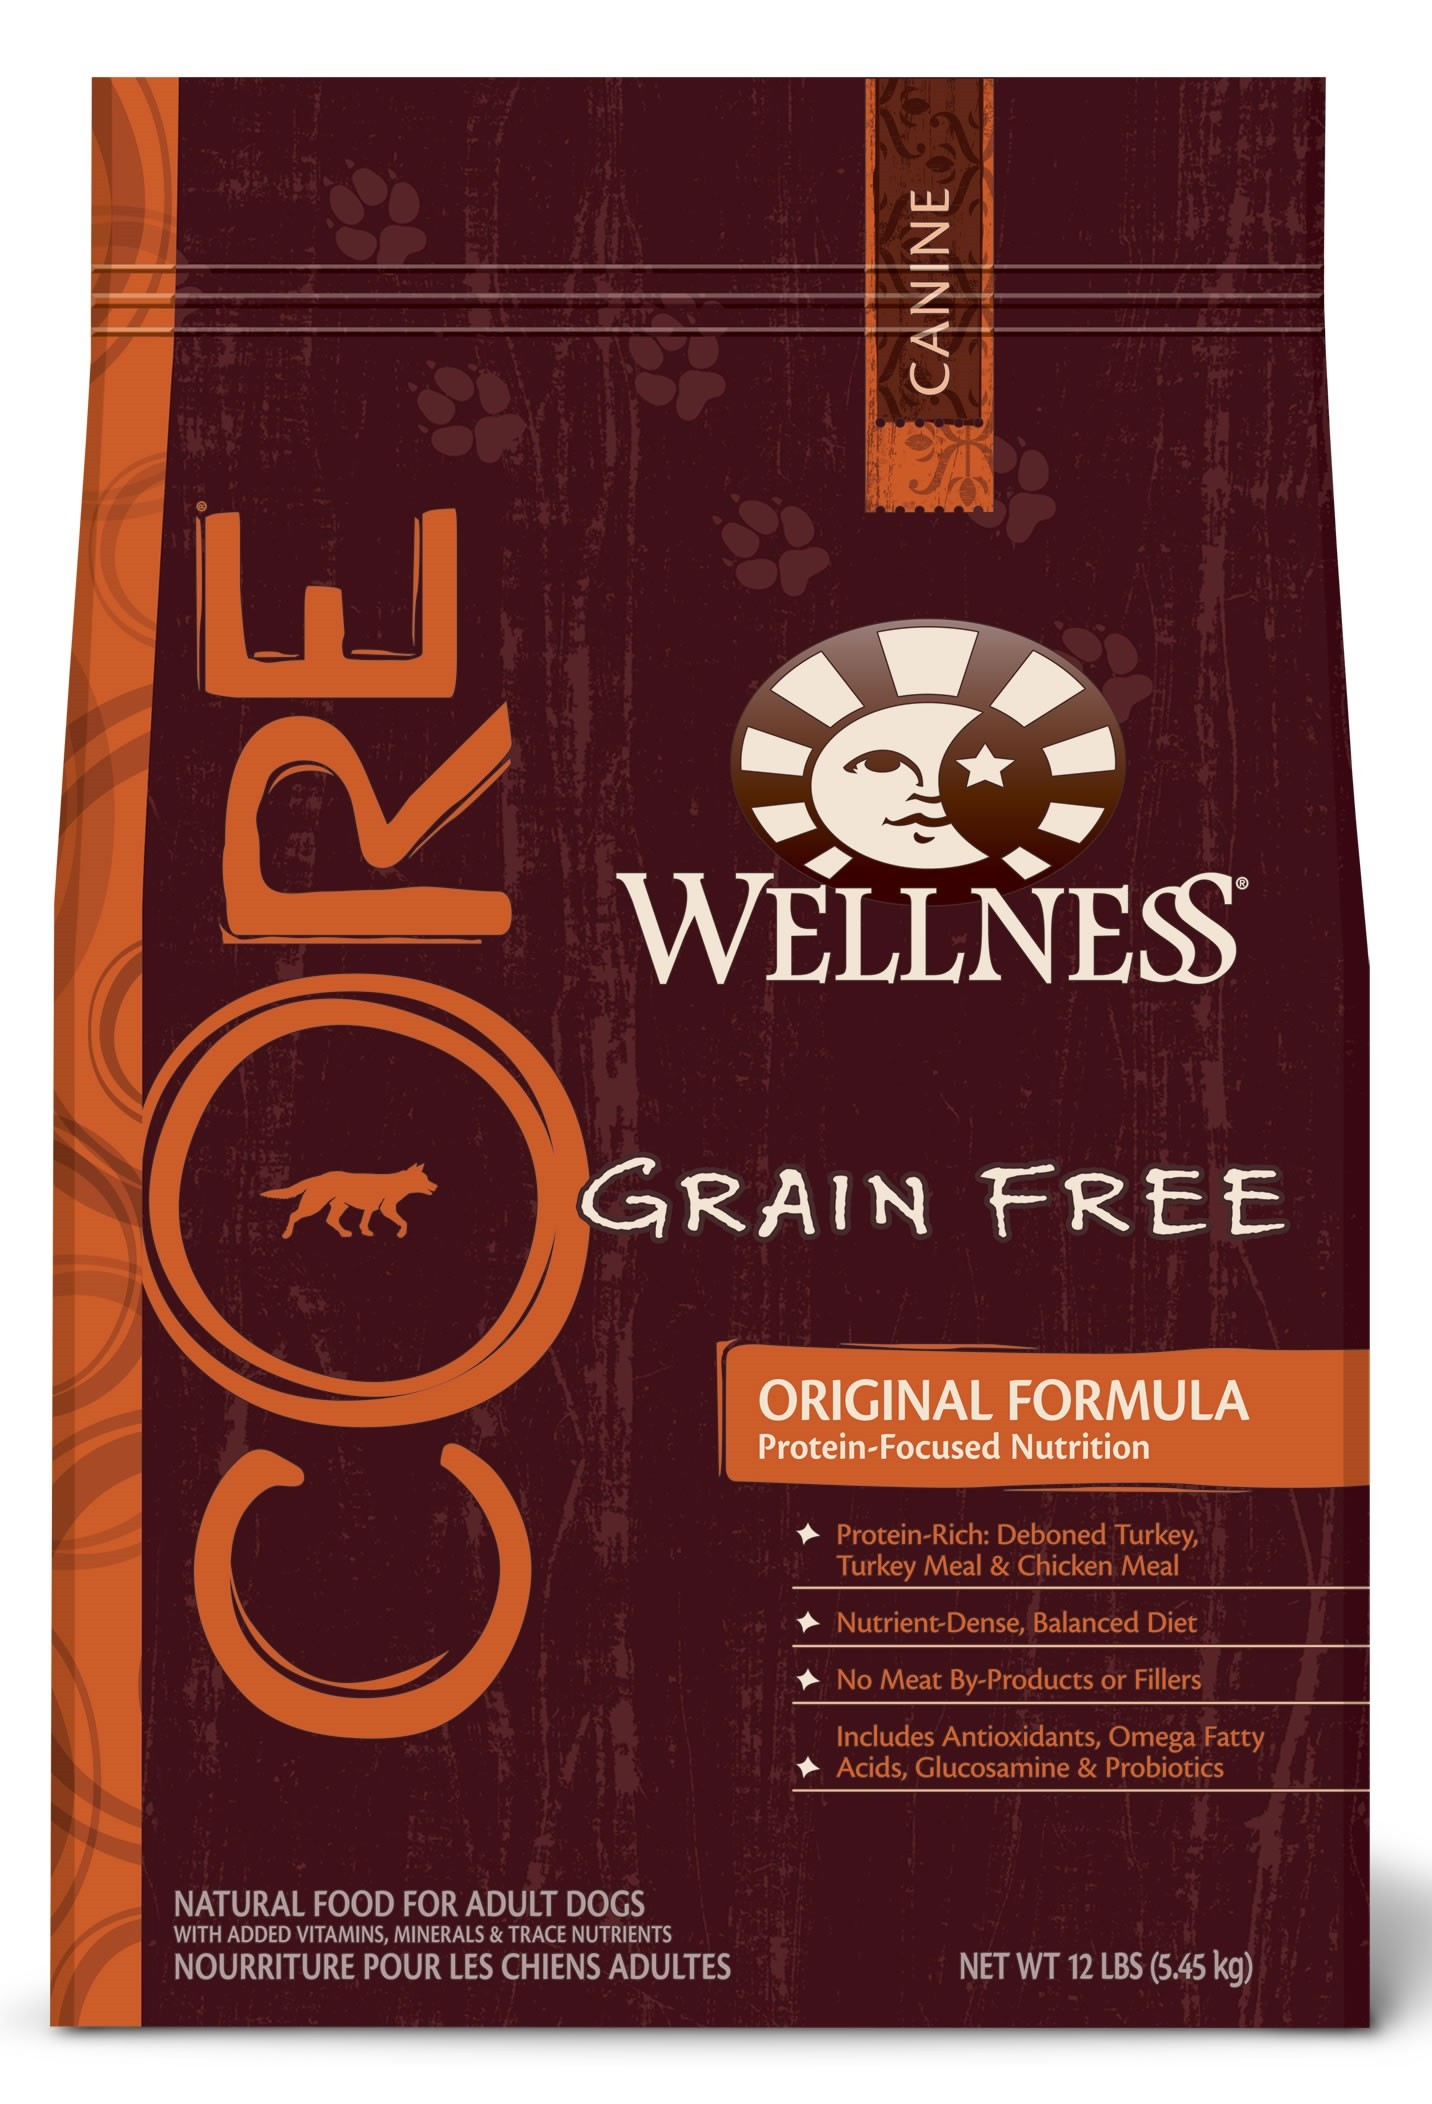 CORE Grain-Free Original